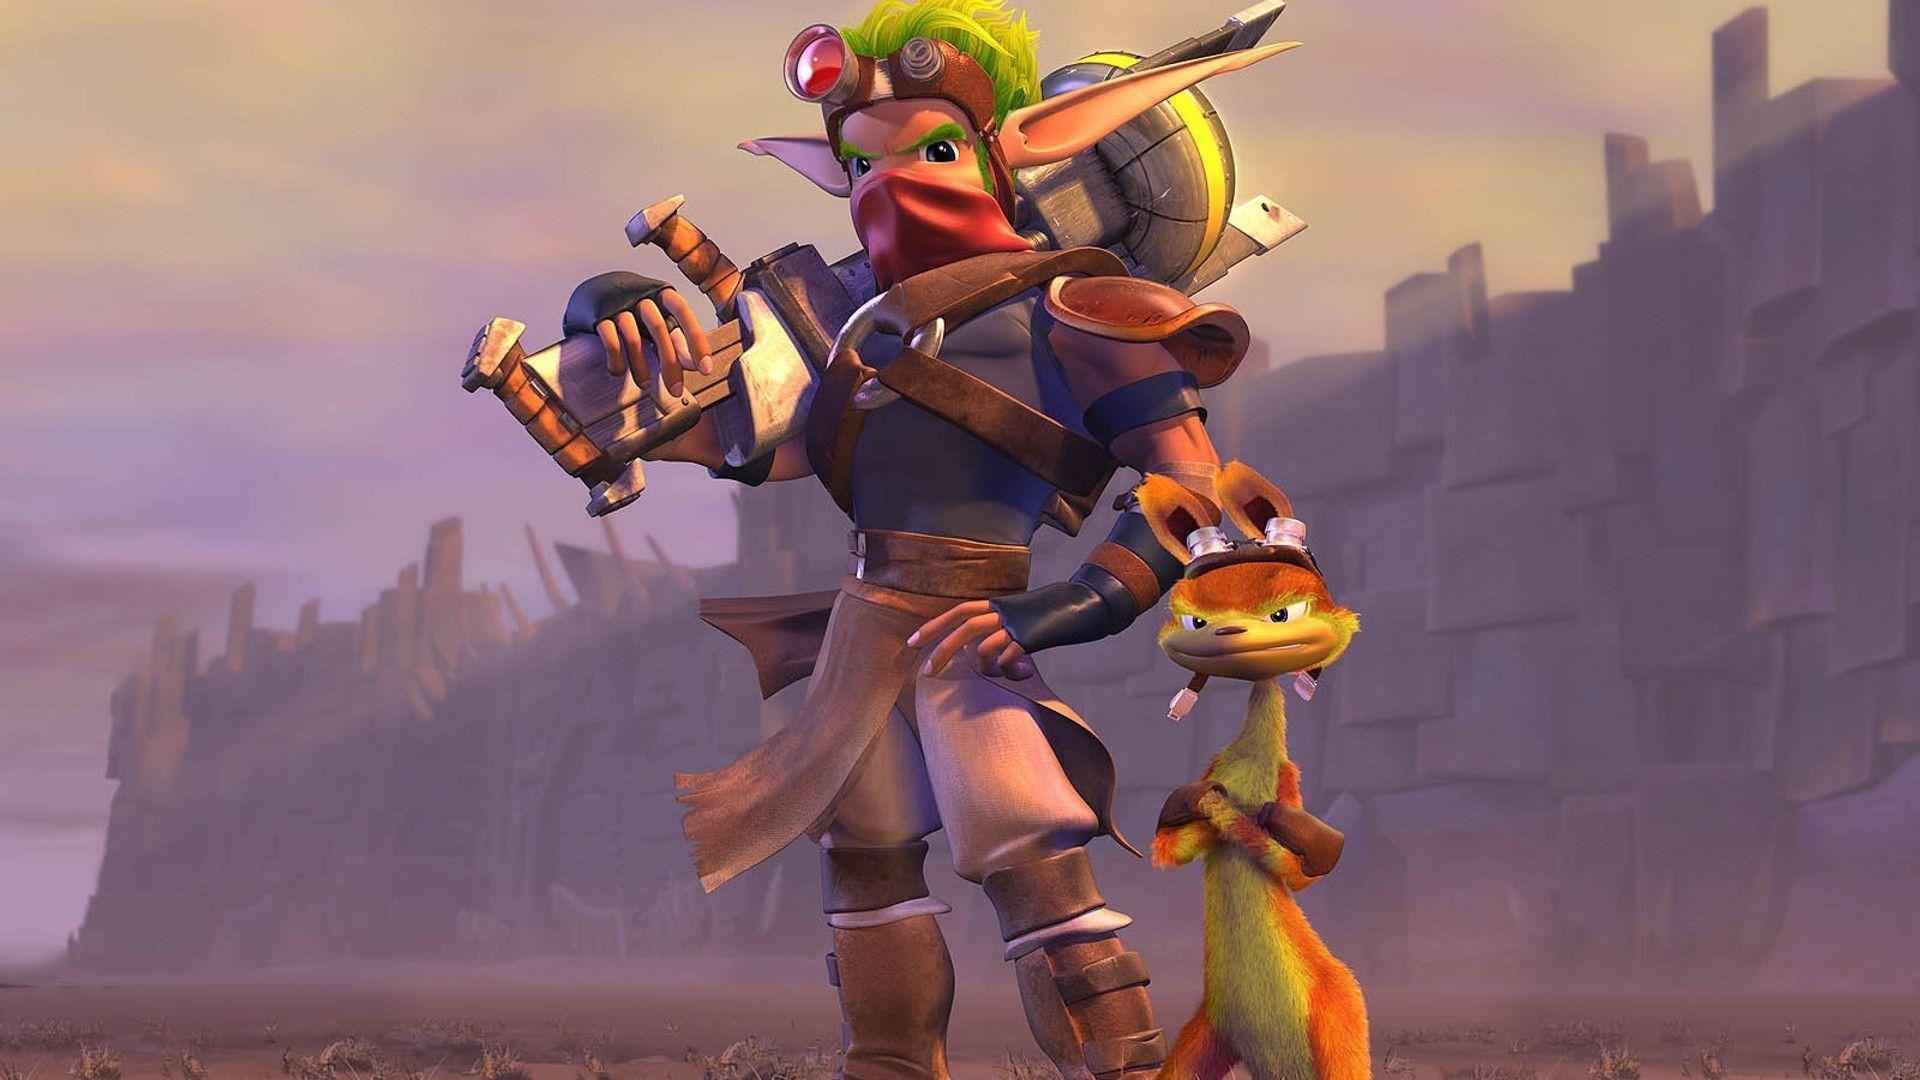 jak and daxter wallpapers - wallpaper cave